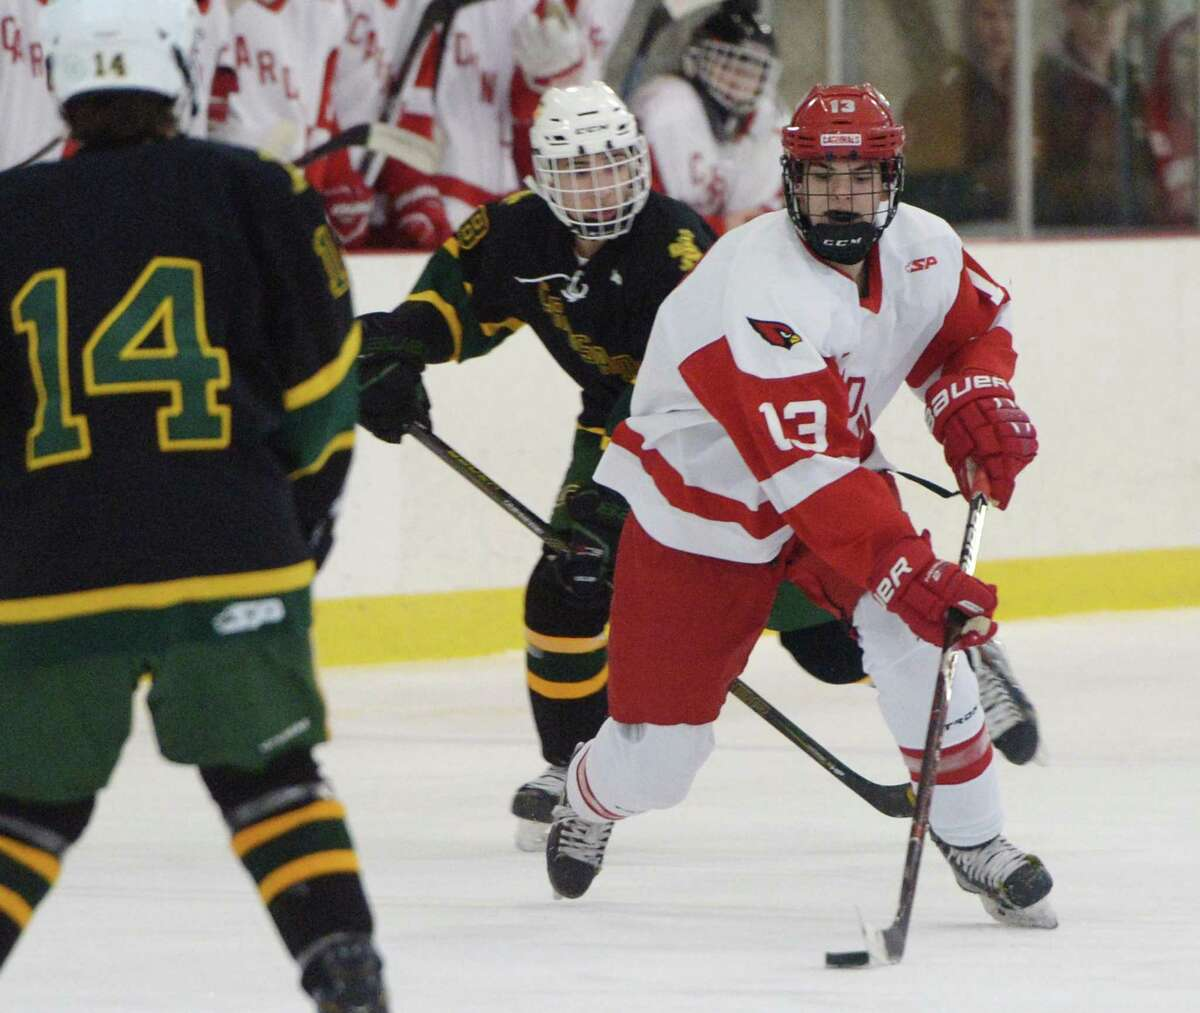 Greenwich's Ryan Columbo (13) controls the puck in Greenwich's 7-0 win over Trinity Catholic in the high school boys ice hockey game at Dorothy Hamill Rink in Greenwich, Conn. Monday, Jan. 28, 2019.